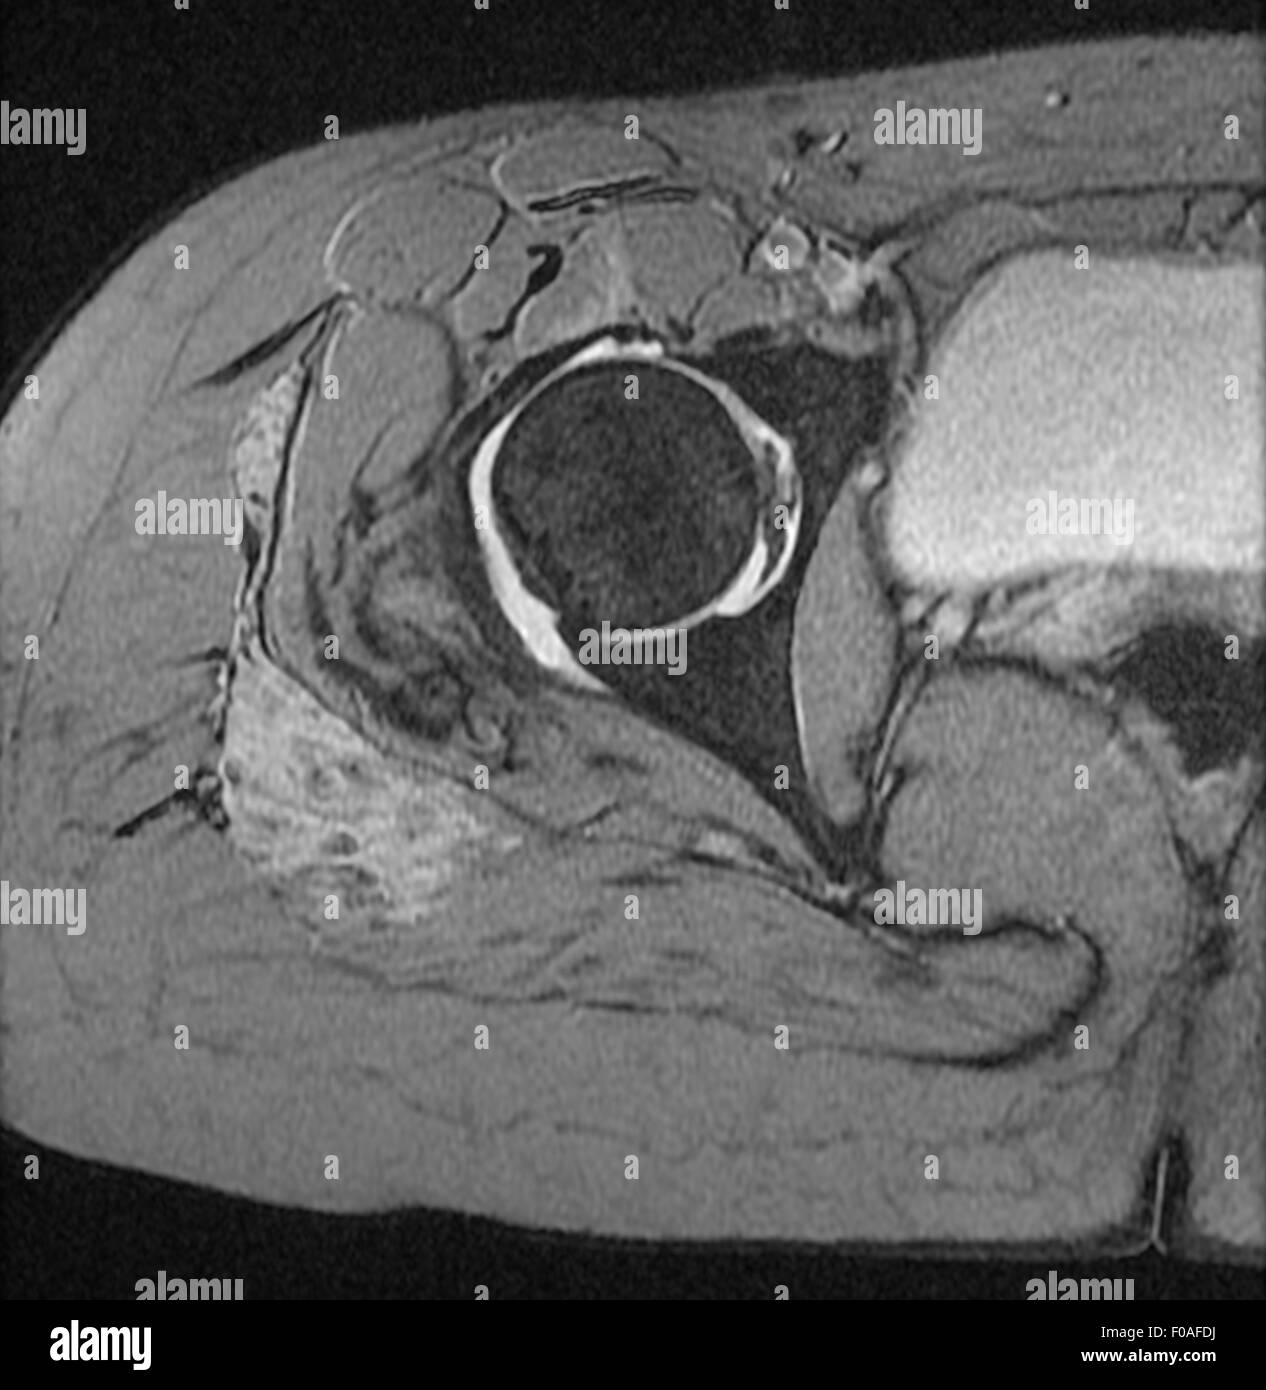 MRI of 20 year old female hip with signs of Hemangioma on upper right thigh - Stock Image